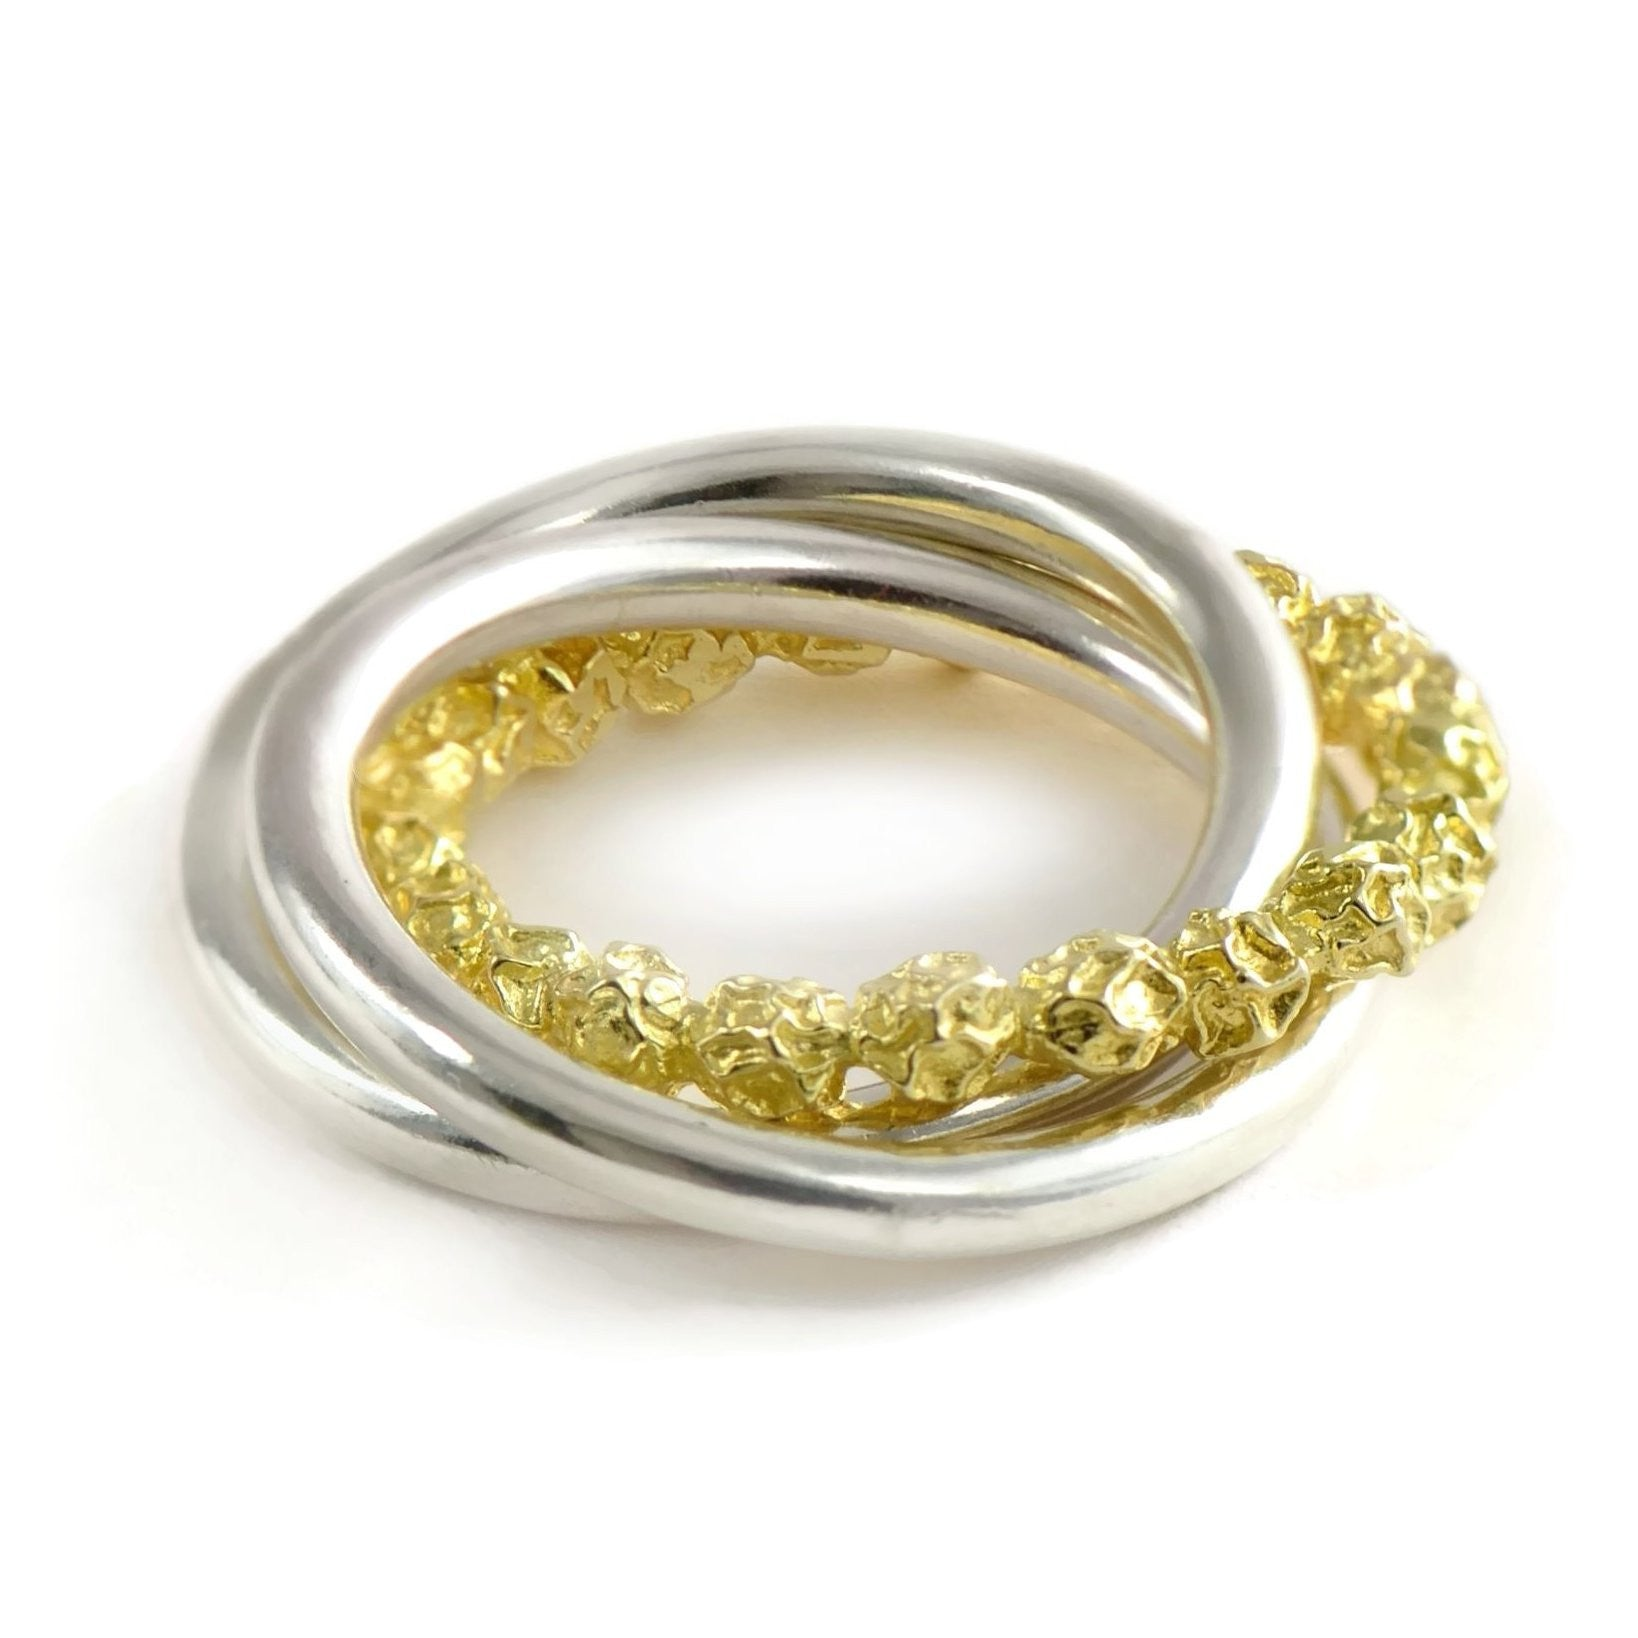 18ct yellow gold and silver russian wedding ring design 18ct yellow eco gold peppercorns design - Russian Wedding Ring